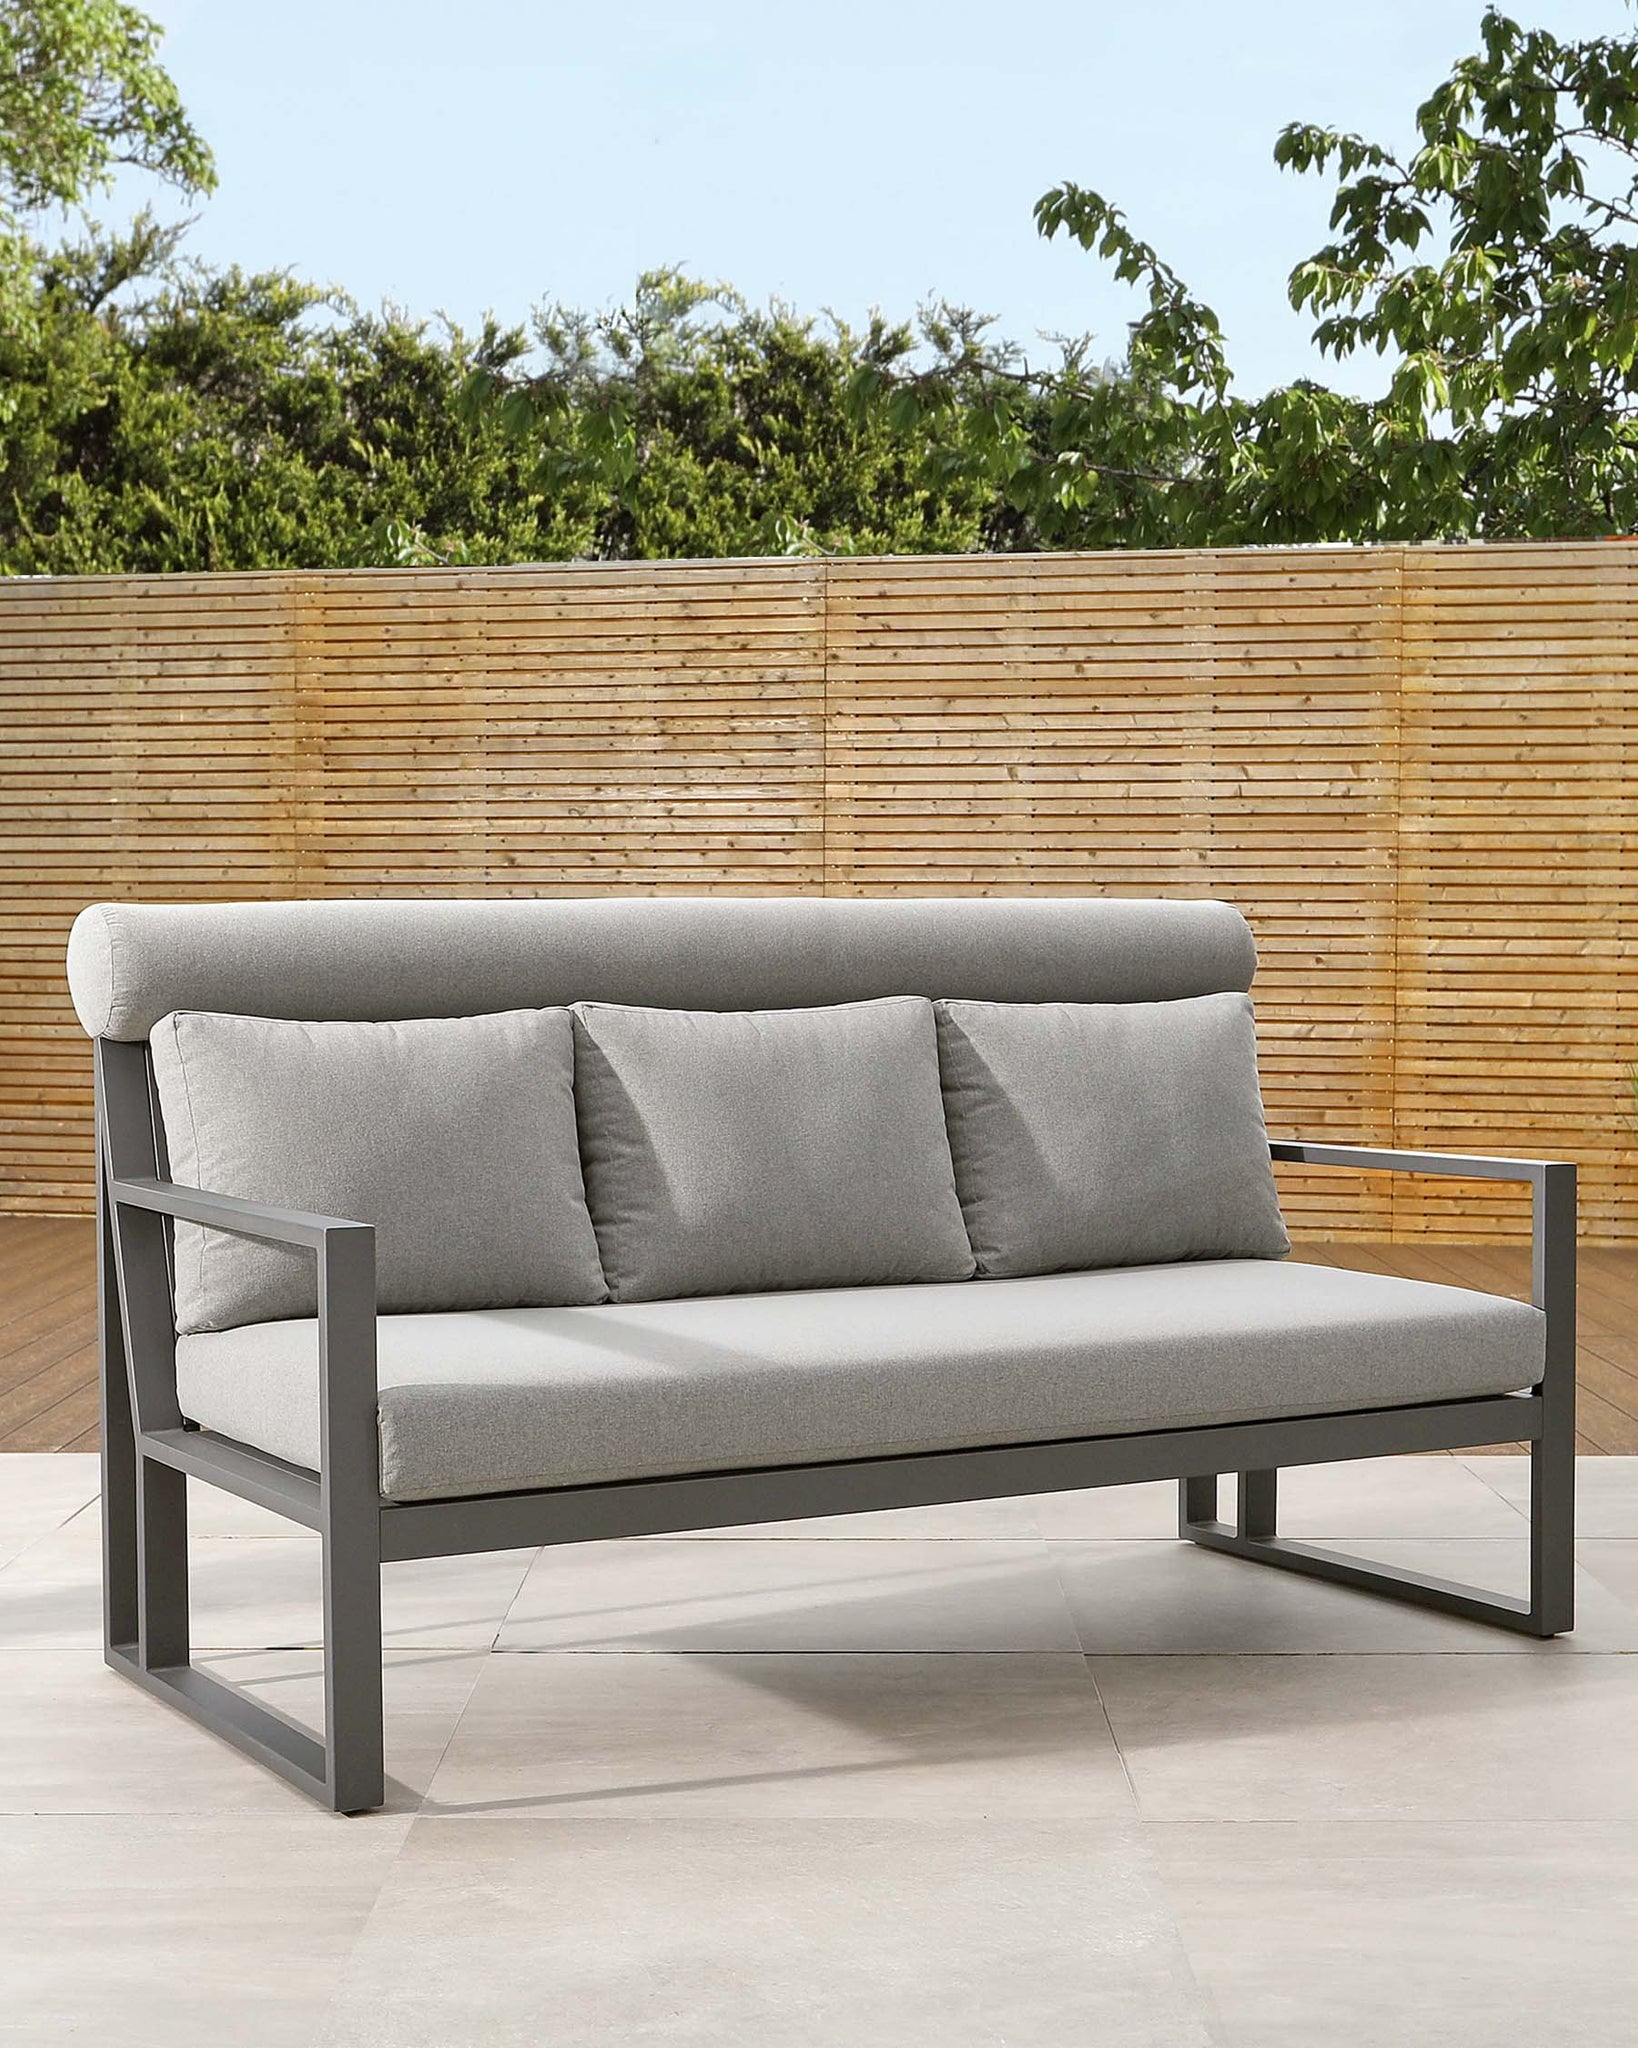 Verano Grey 3 Seater Garden Sofa Bench